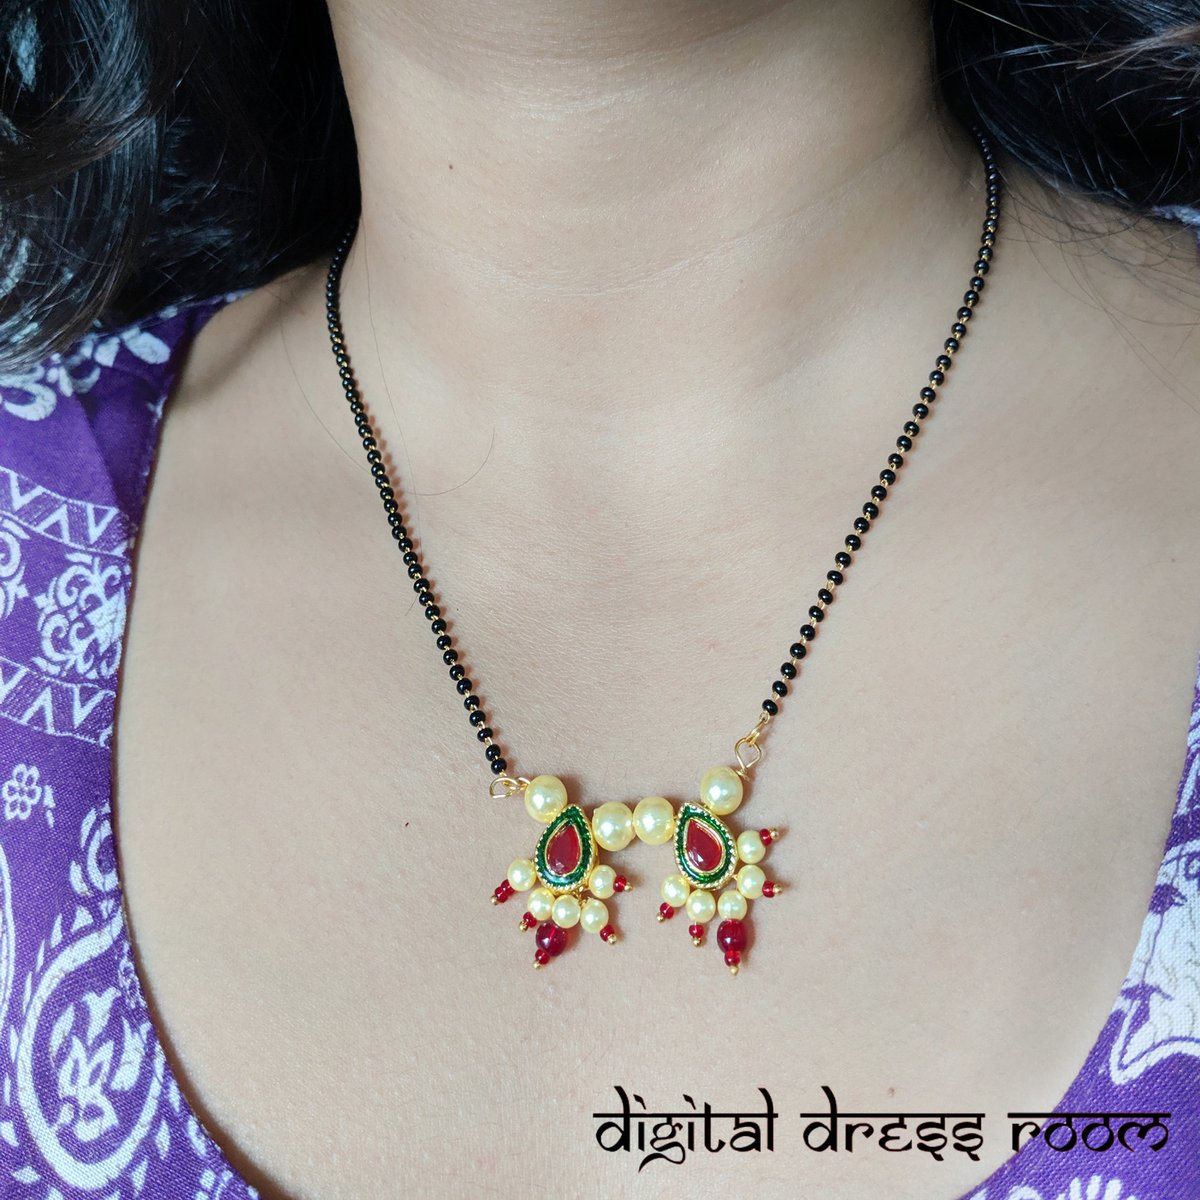 Digital Dress Room On Twitter Short Mangalsutra Designs Gold Plated Latest Pearls Red Stone Pendant Traditional Mangalsutra Item Code 1407n86 299 18 Inches Mangalsutra Mangalsutradesign Goldmangalsutra Mangalsutracollection,Bridal Lehenga Blouse Back Designs 2020